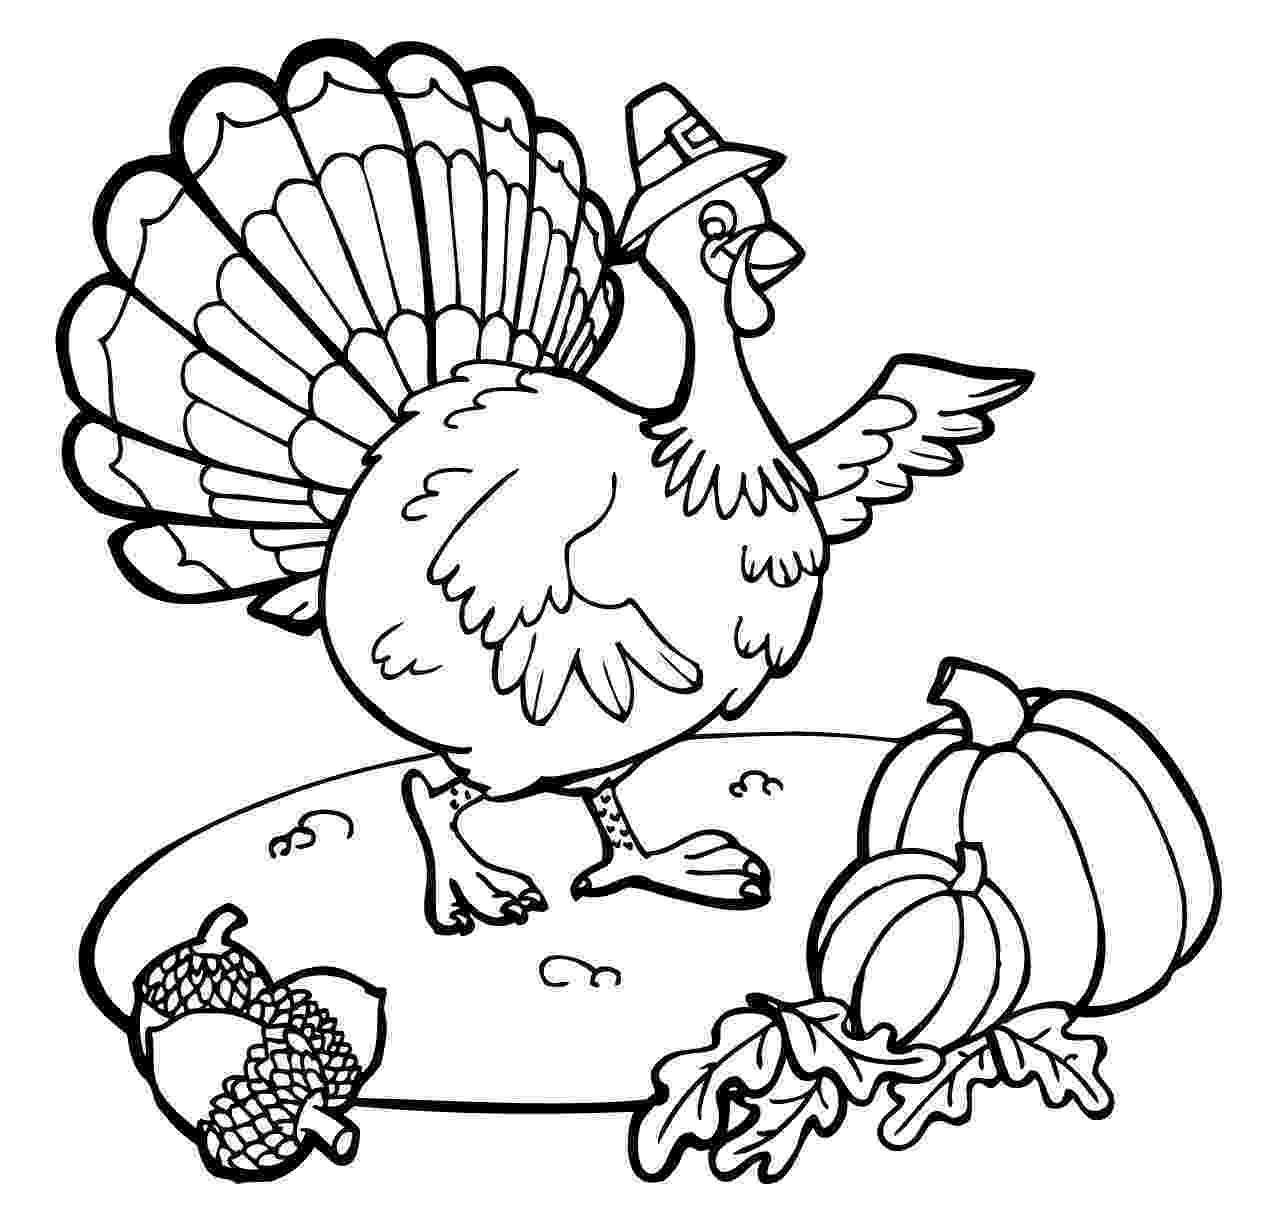 turkey coloring sheet free thanksgiving coloring pages for adults kids sheet coloring turkey